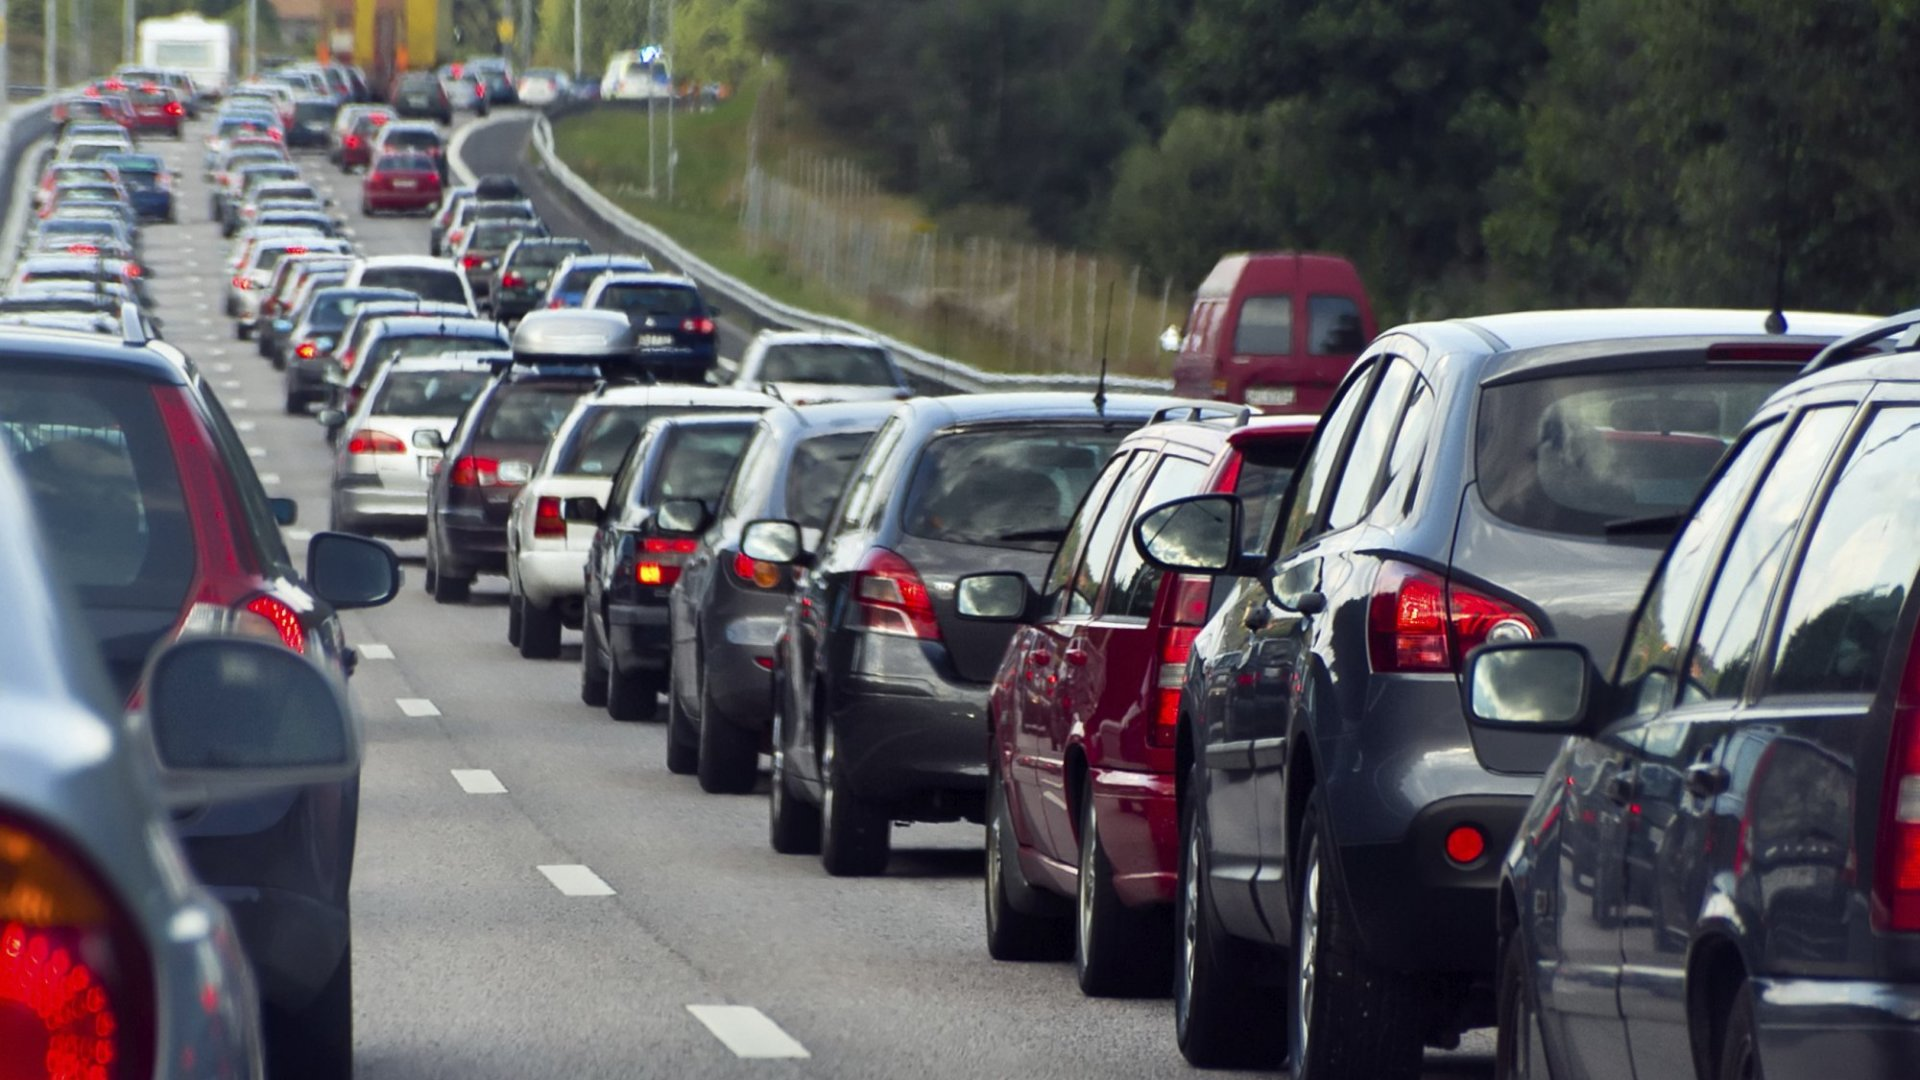 Your Horrible Commute Is Causing You to Make Even Worse Decisions at Work, According to Research